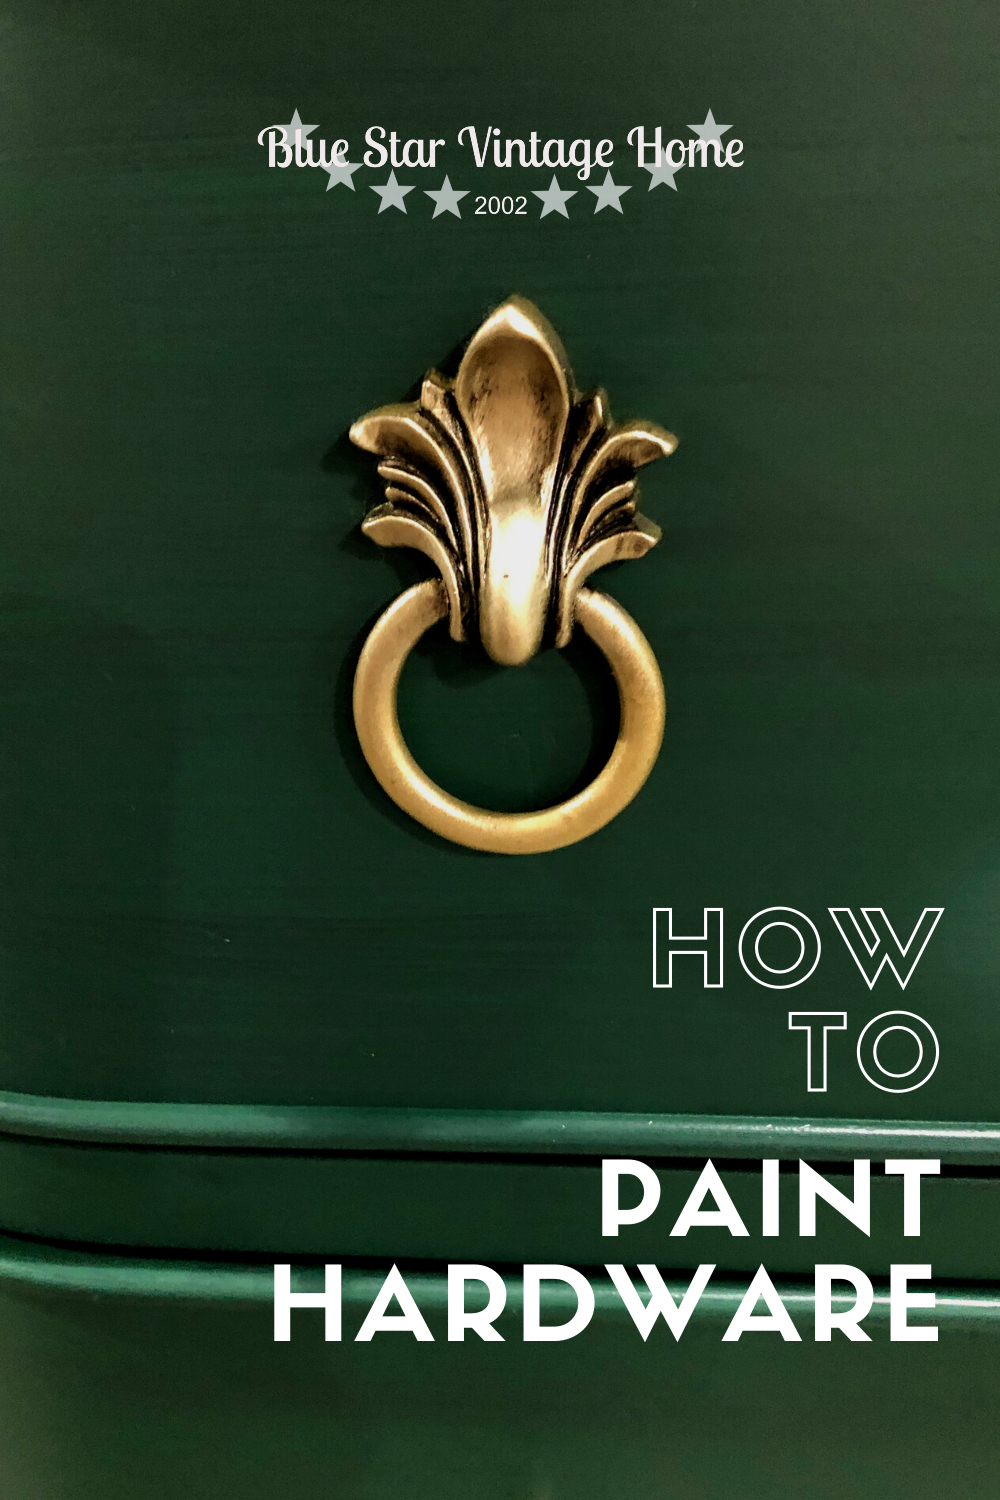 How to paint hardware 2 How to Paint Hardware